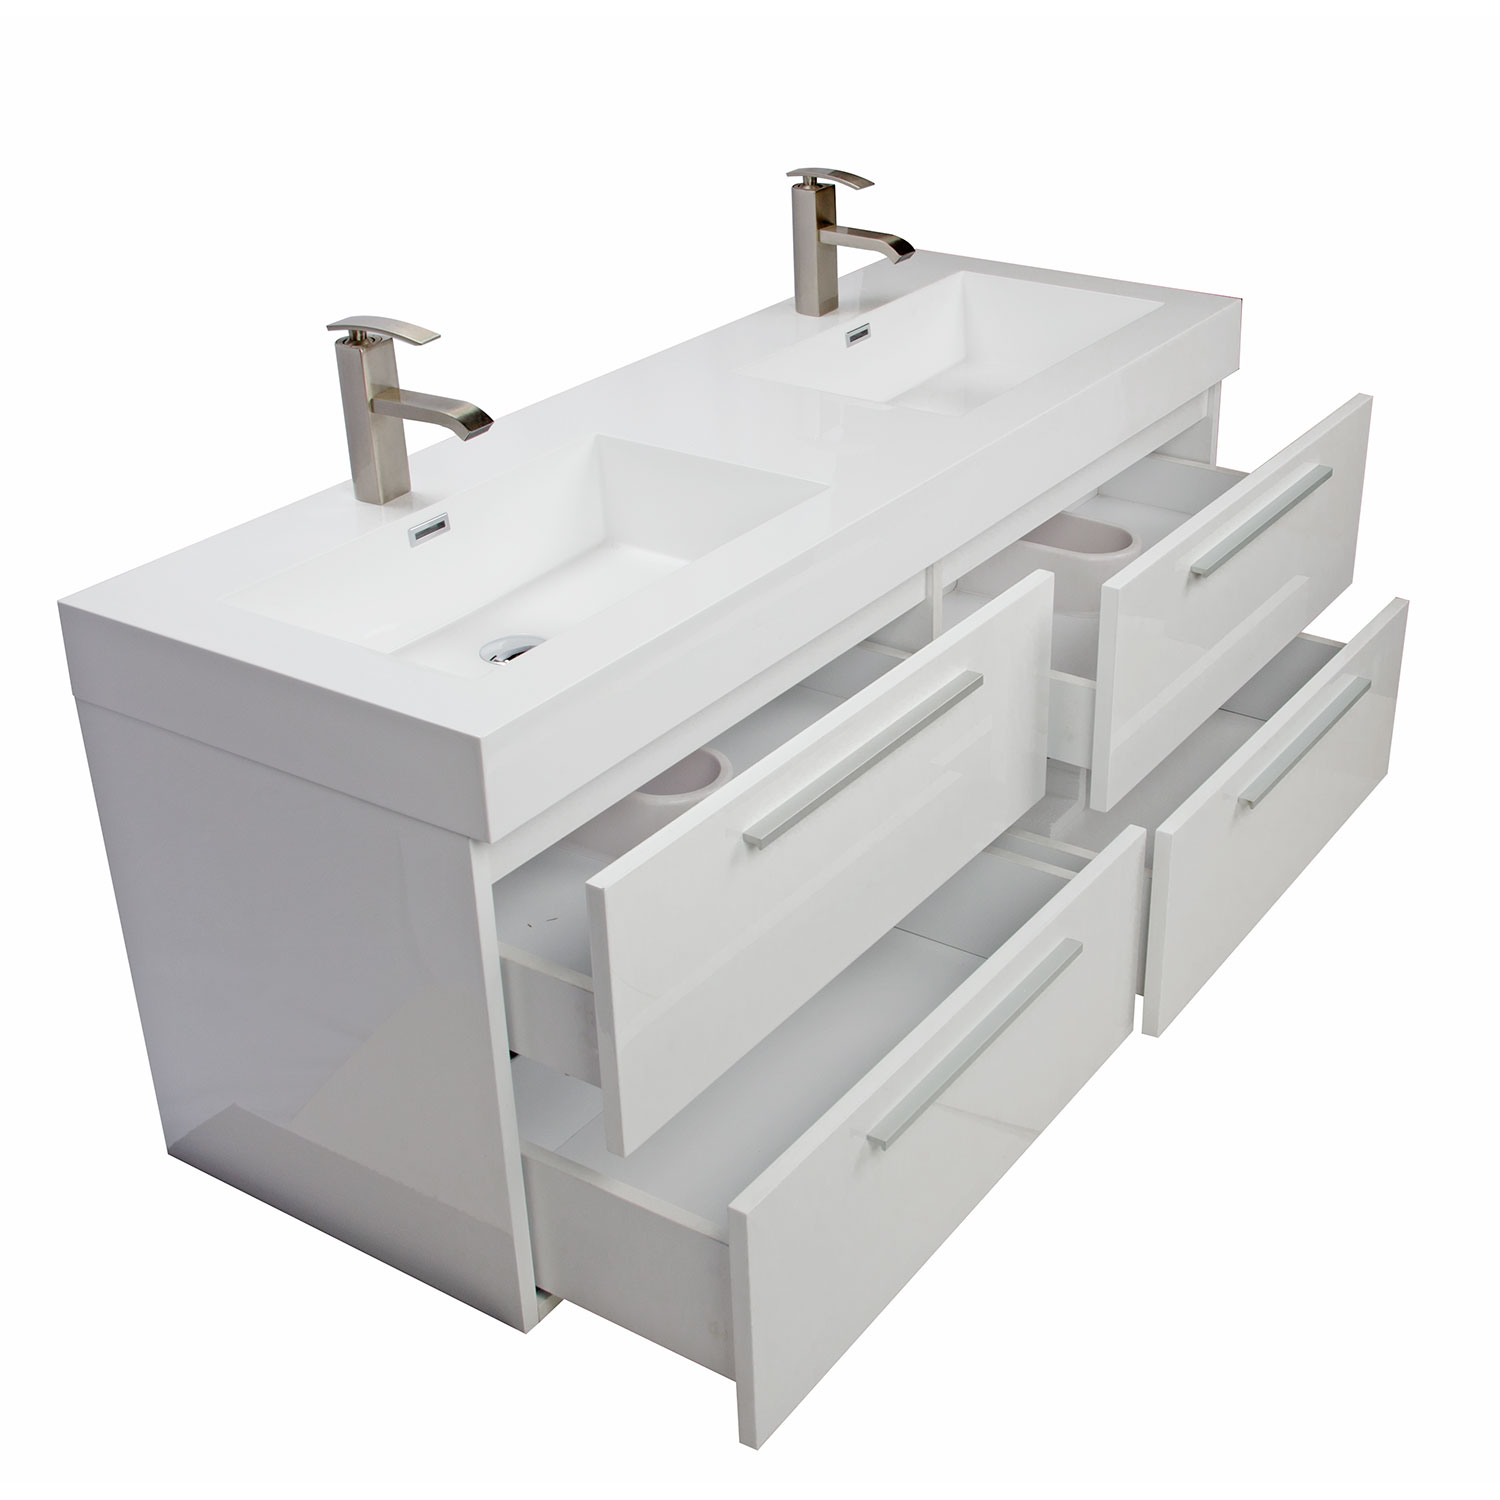 Buy 54 Inch Modern Double Sink Vanity Set With Drawers Gloss White Tn B1380 Hgw